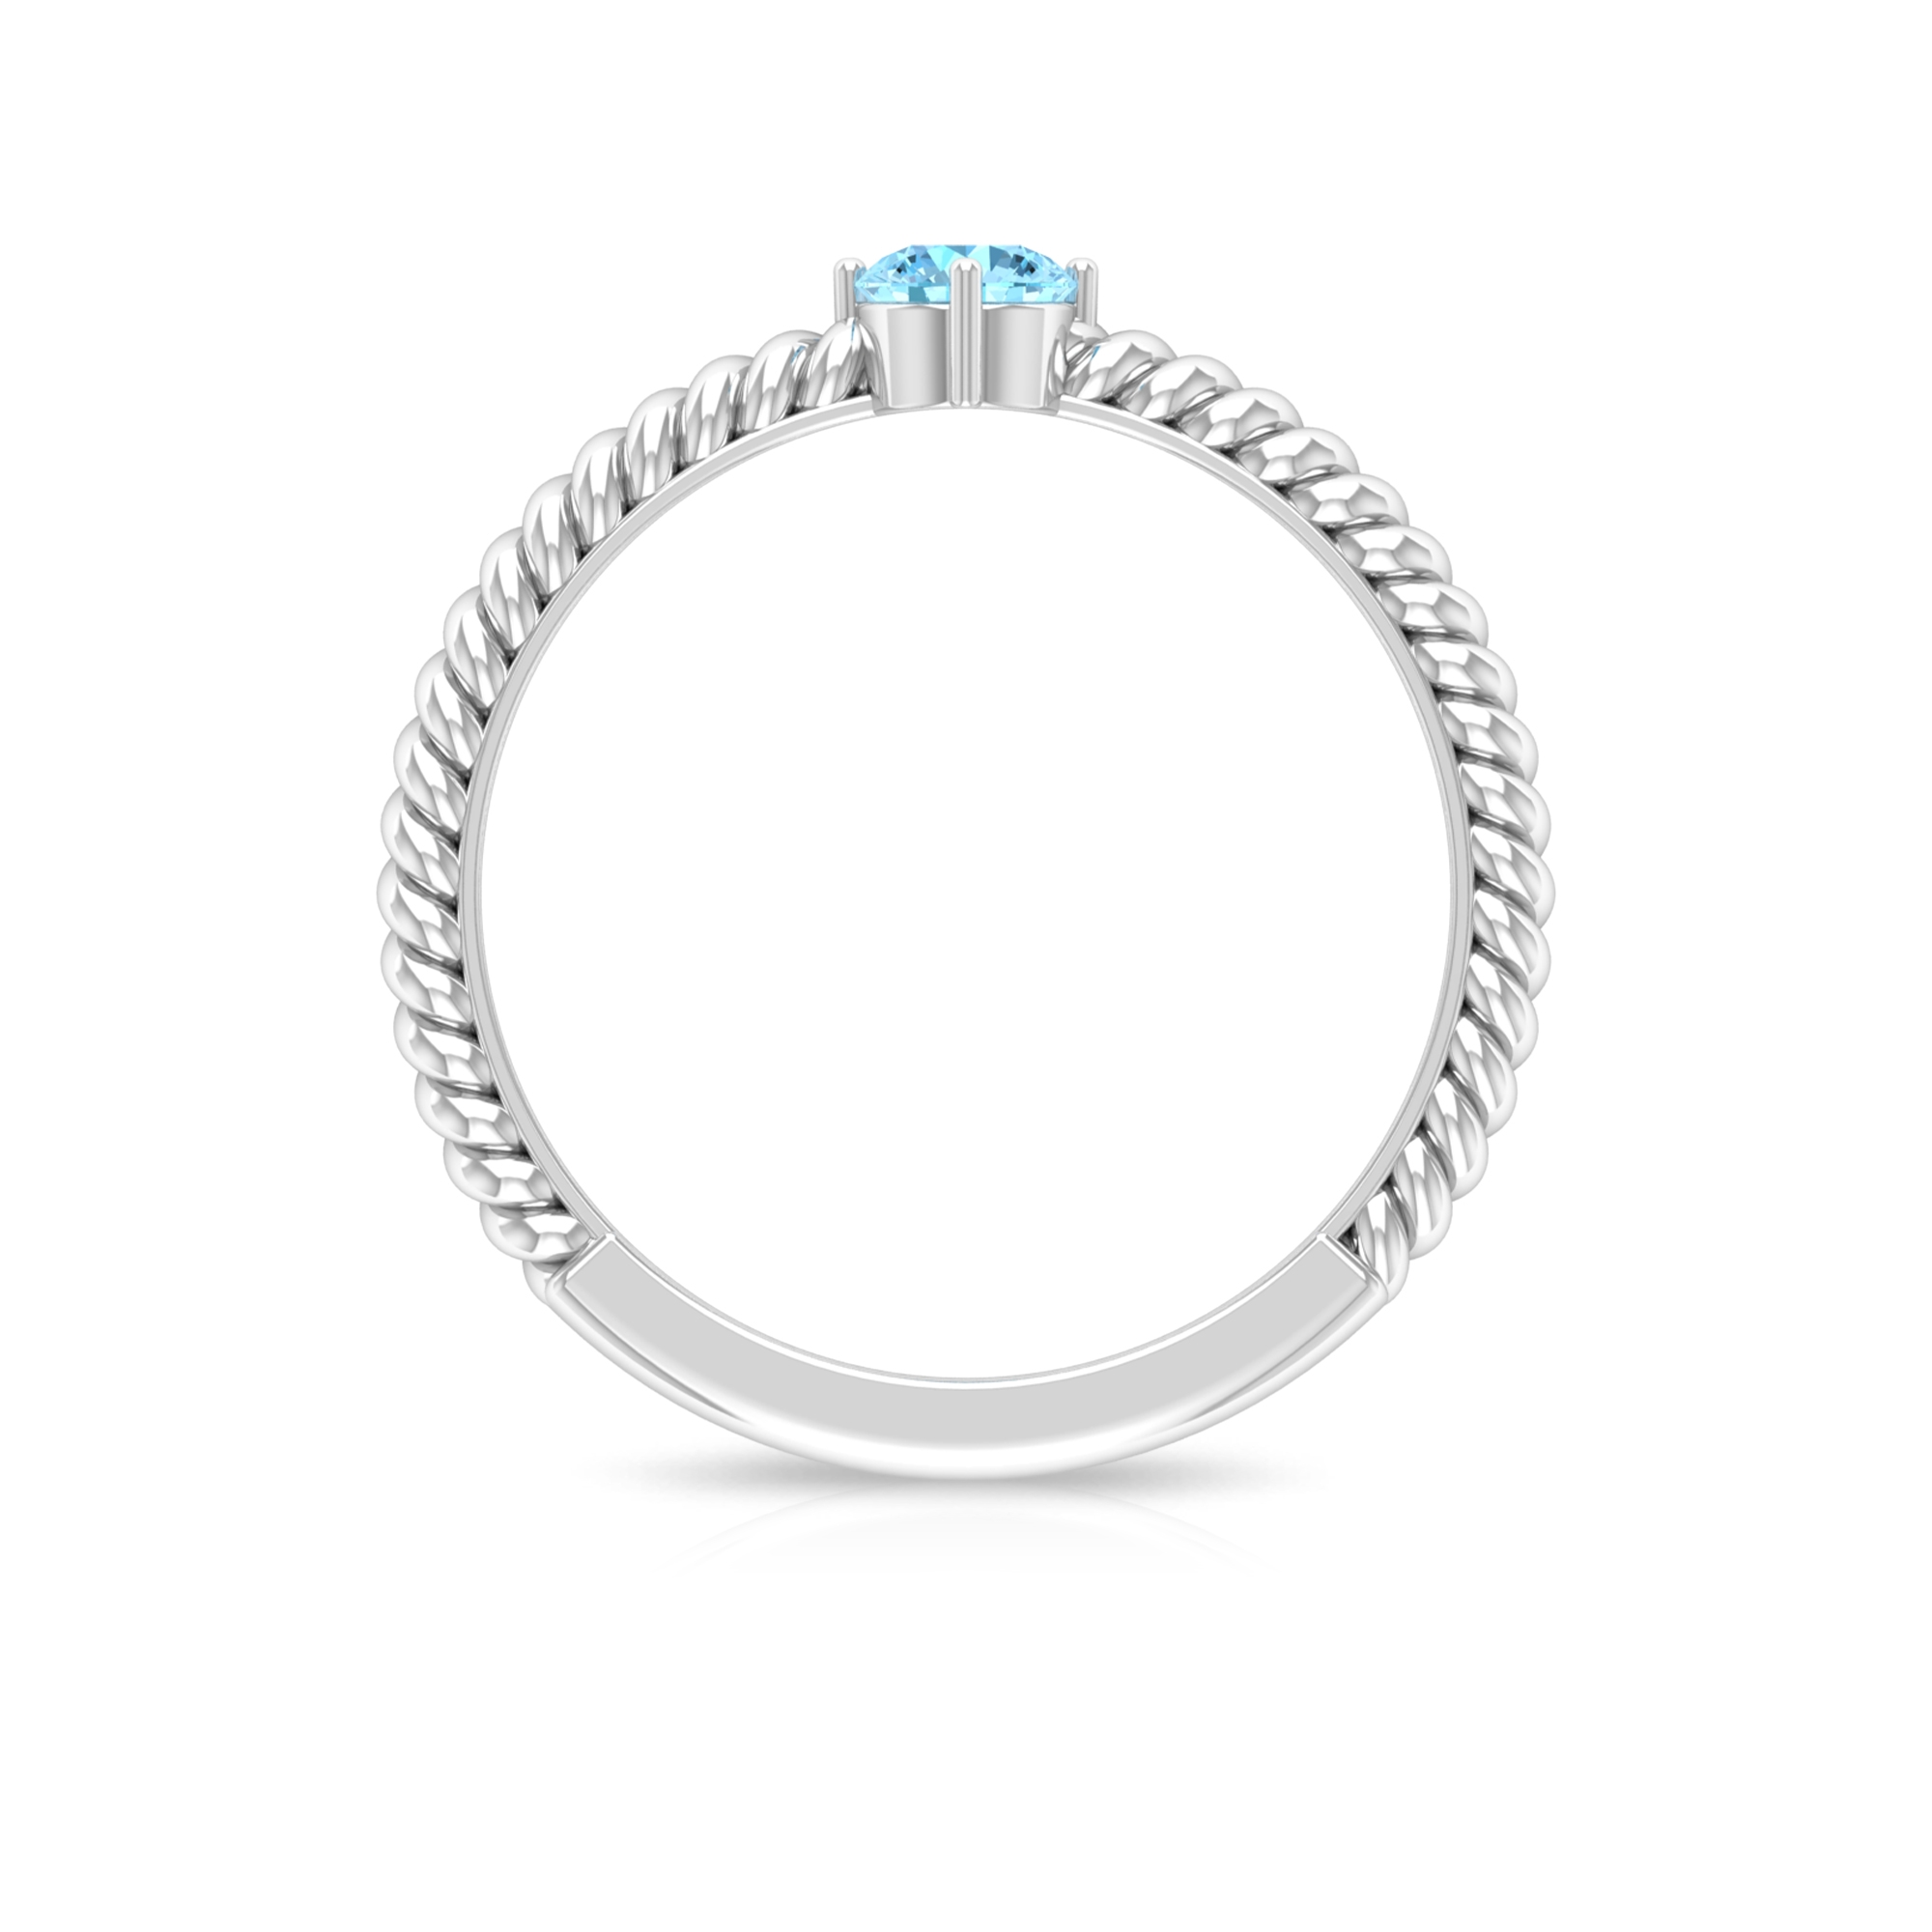 4 MM Round Cut Aquamarine Solitaire Four Prong Diagonal Set Ring with Twisted Rope Shank